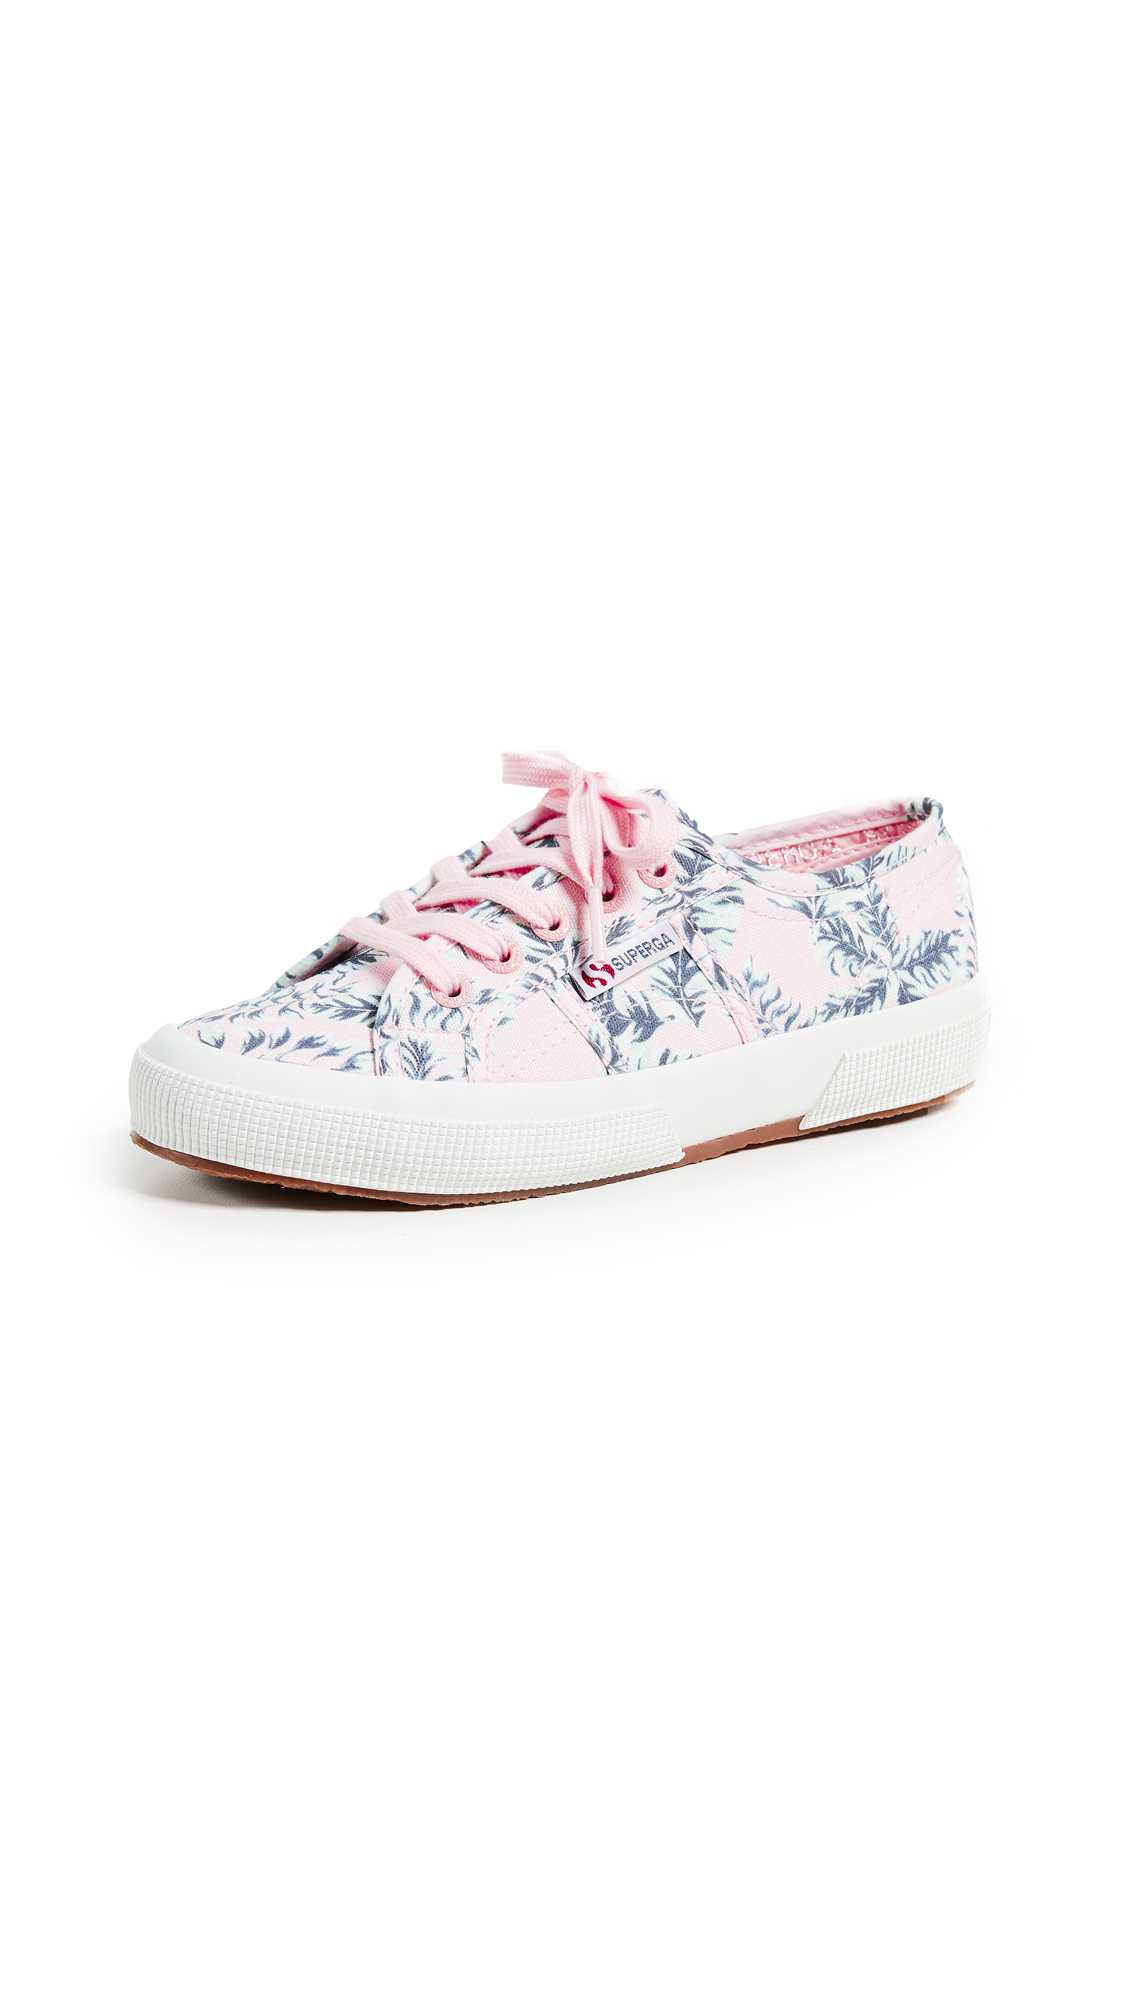 Superga 2750 Hawaiian Sneakers